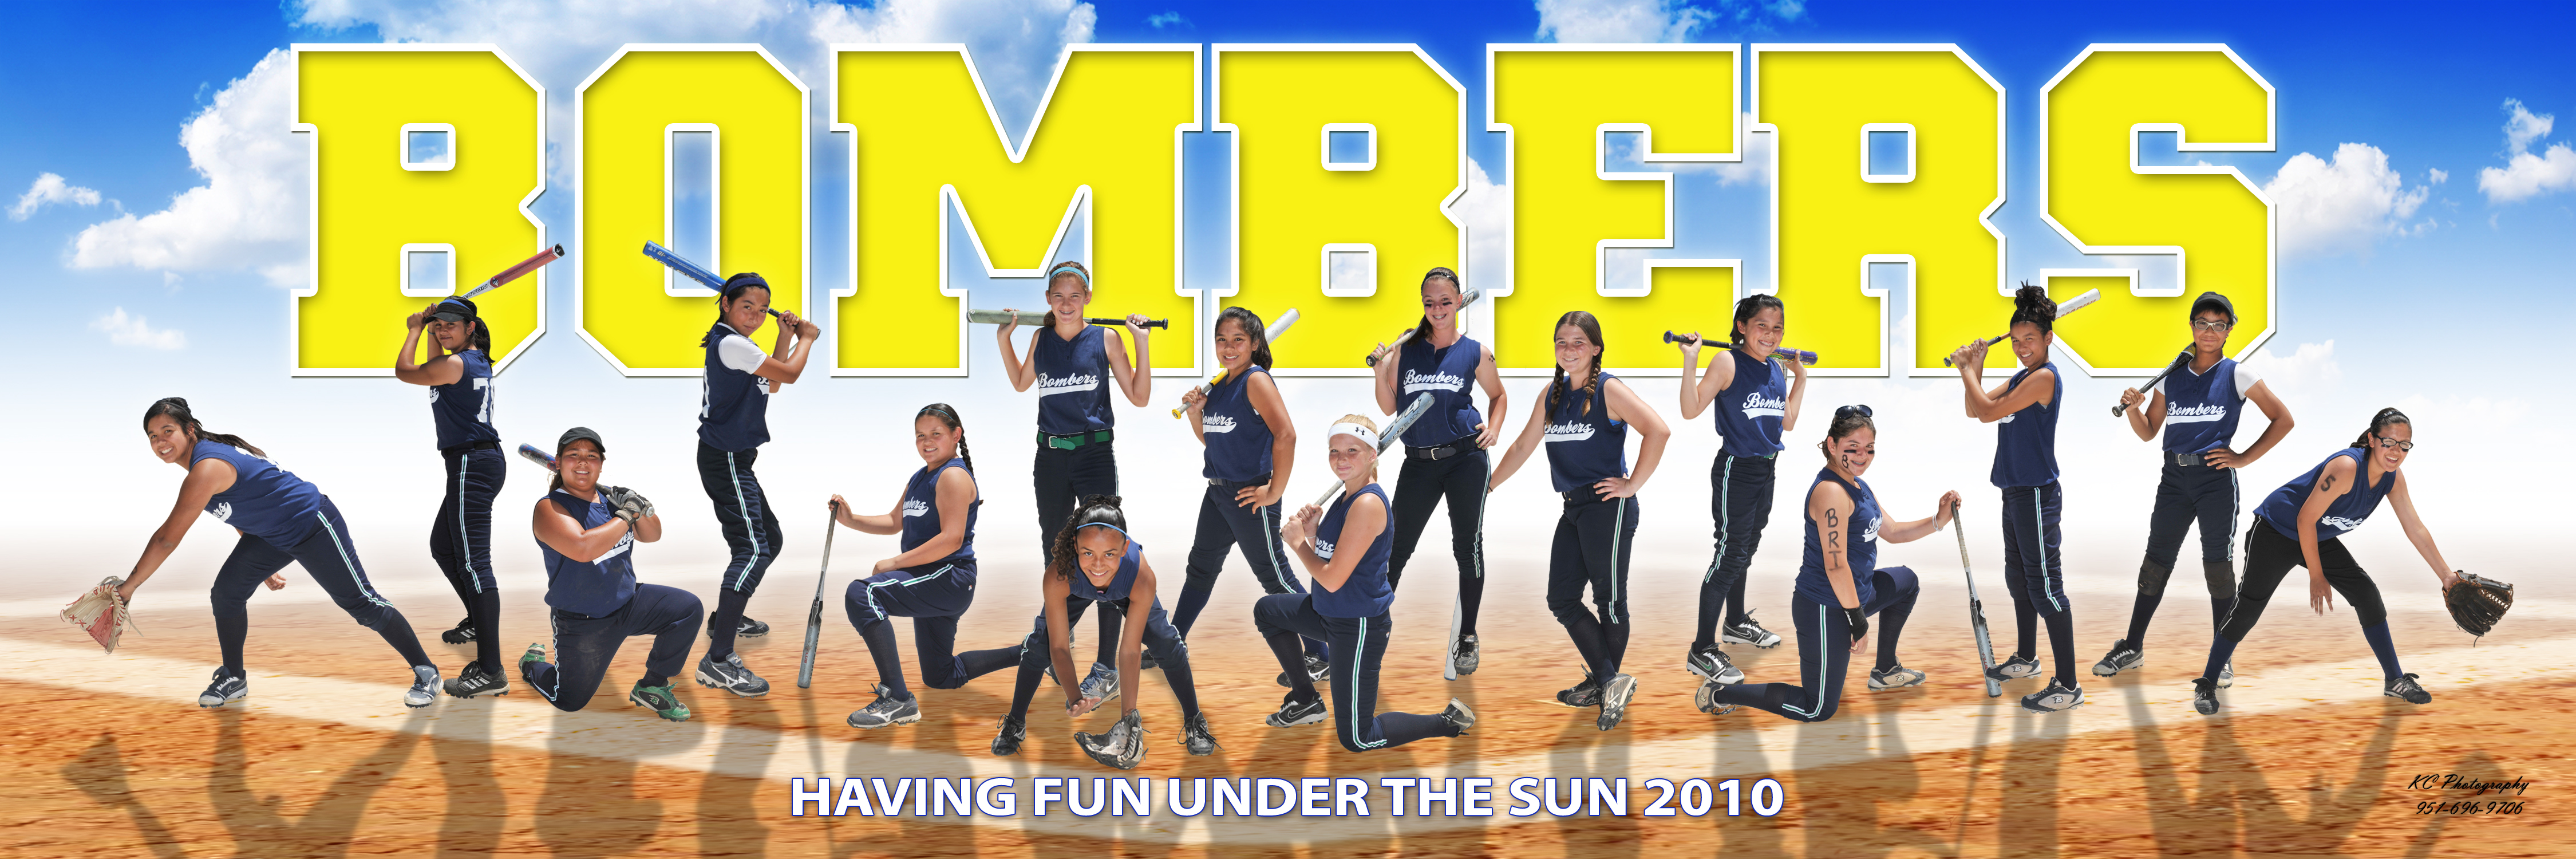 Bombers Softball Pano